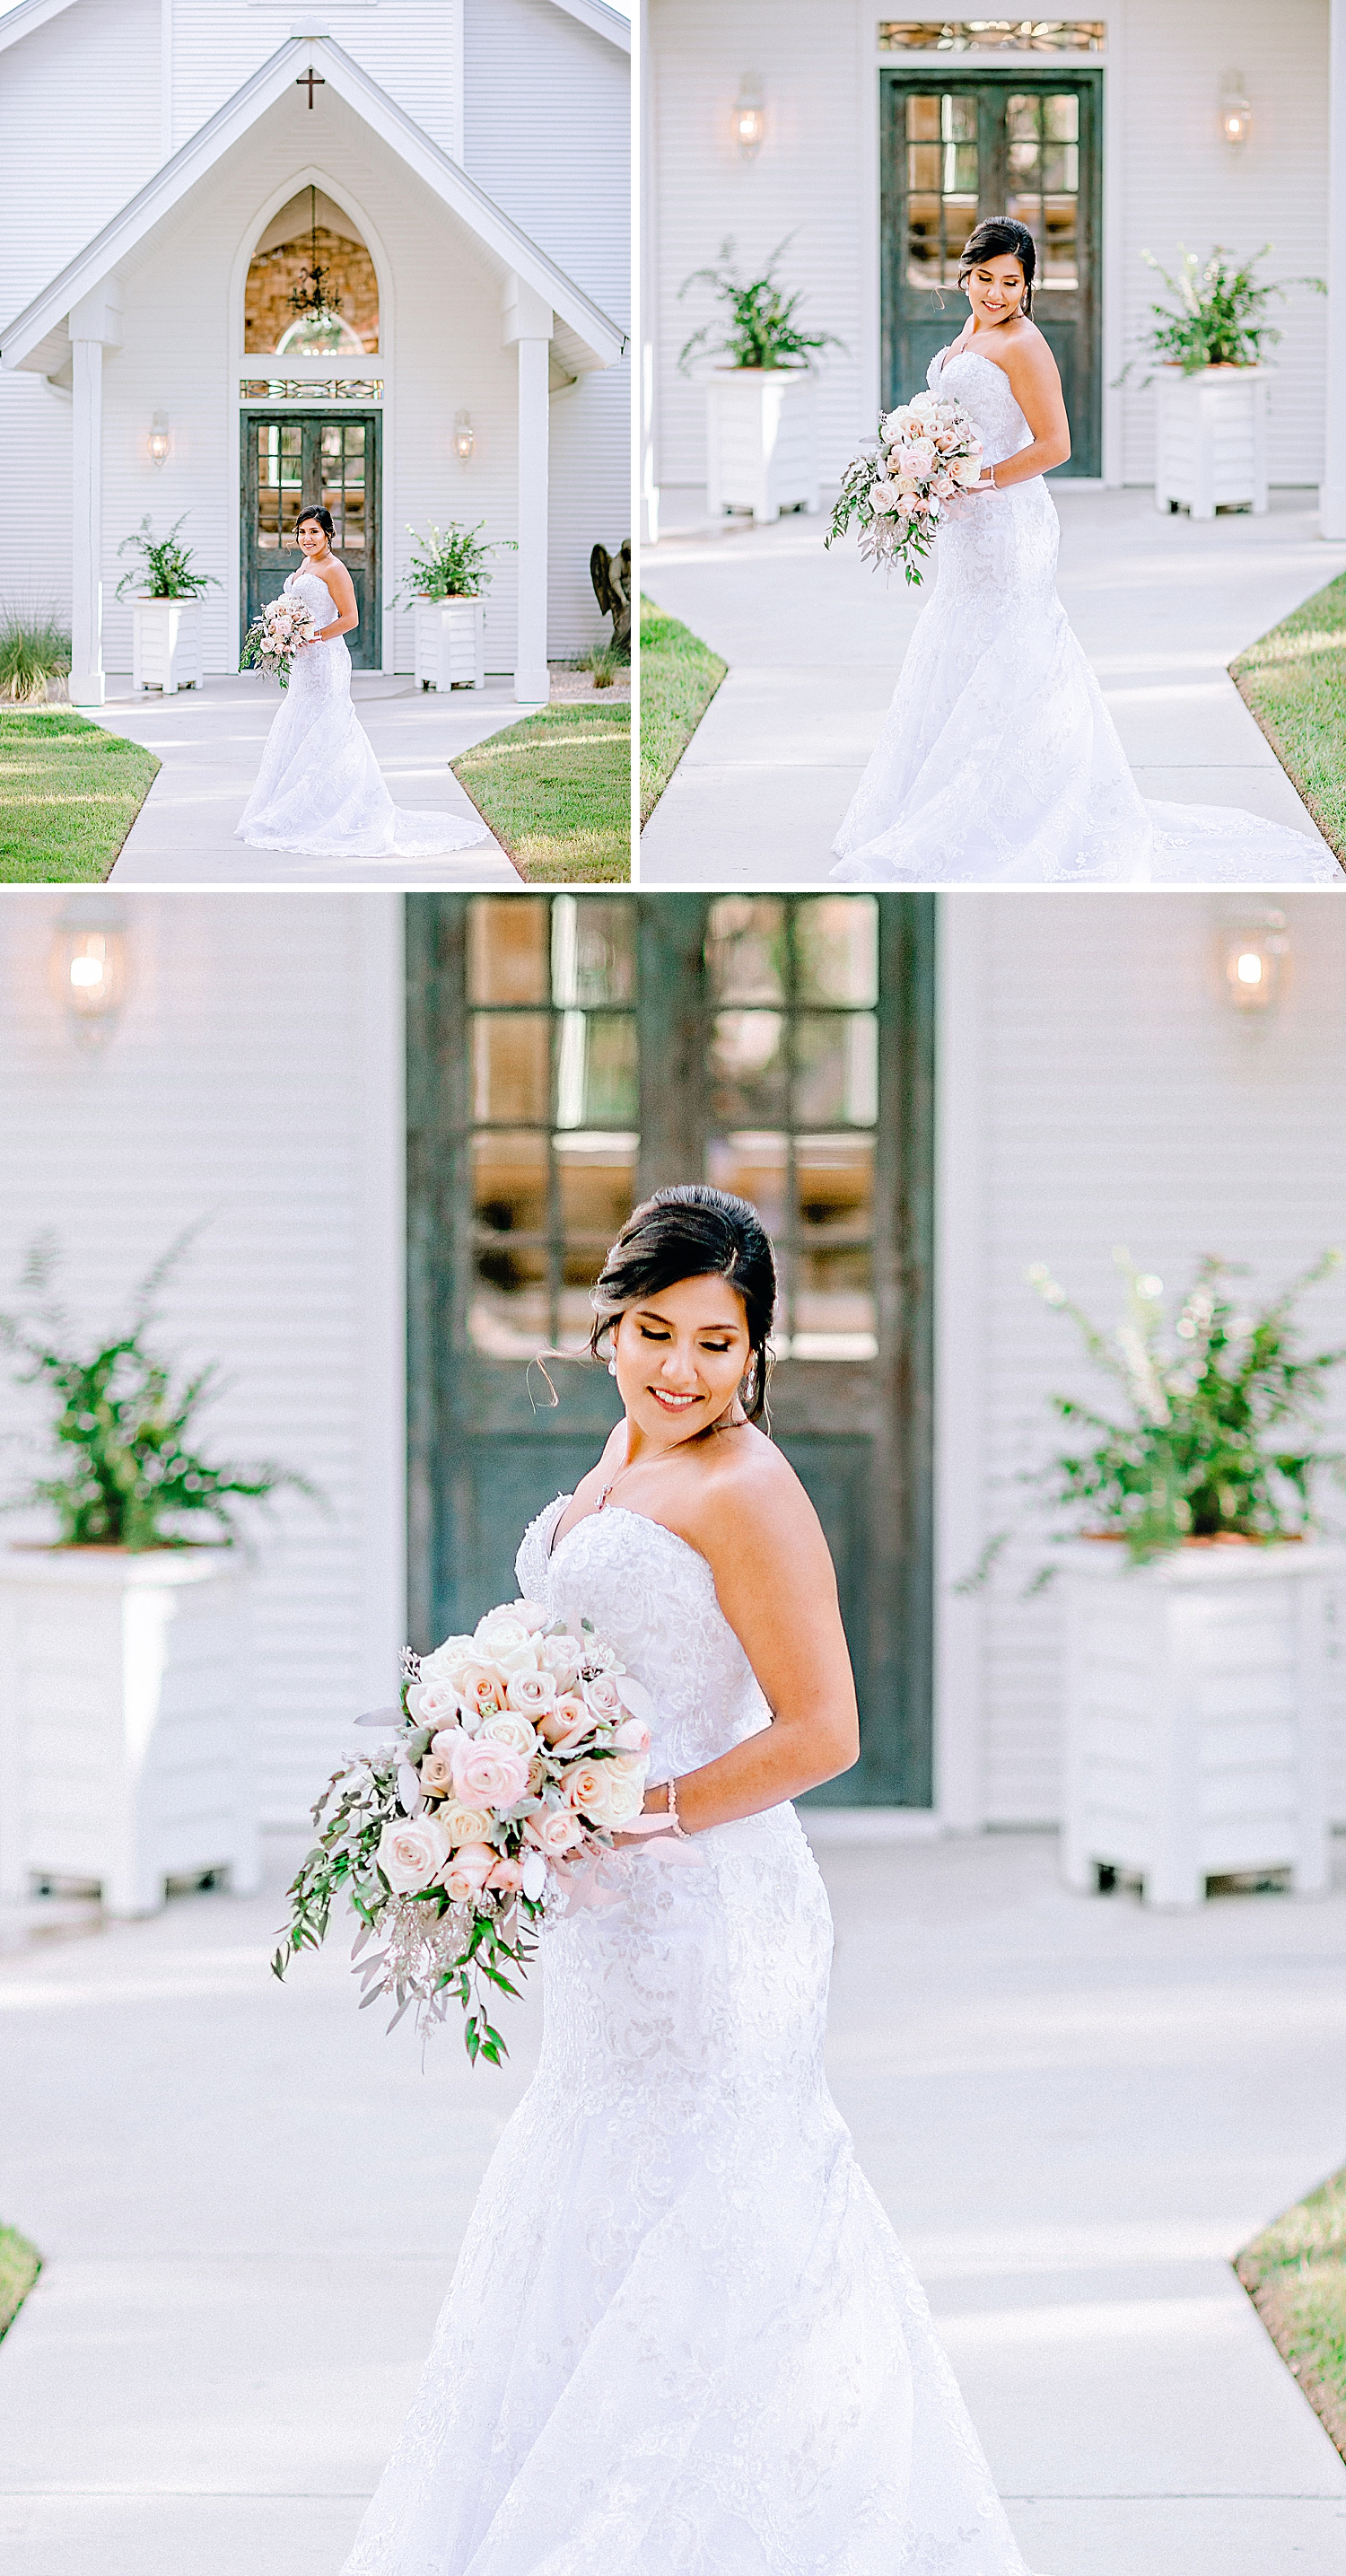 Carly-Barton-Photography-Bridal-Photos-Chadelier-of-Gruene-New-Braunfels-Wedding-Photographer_0003.jpg